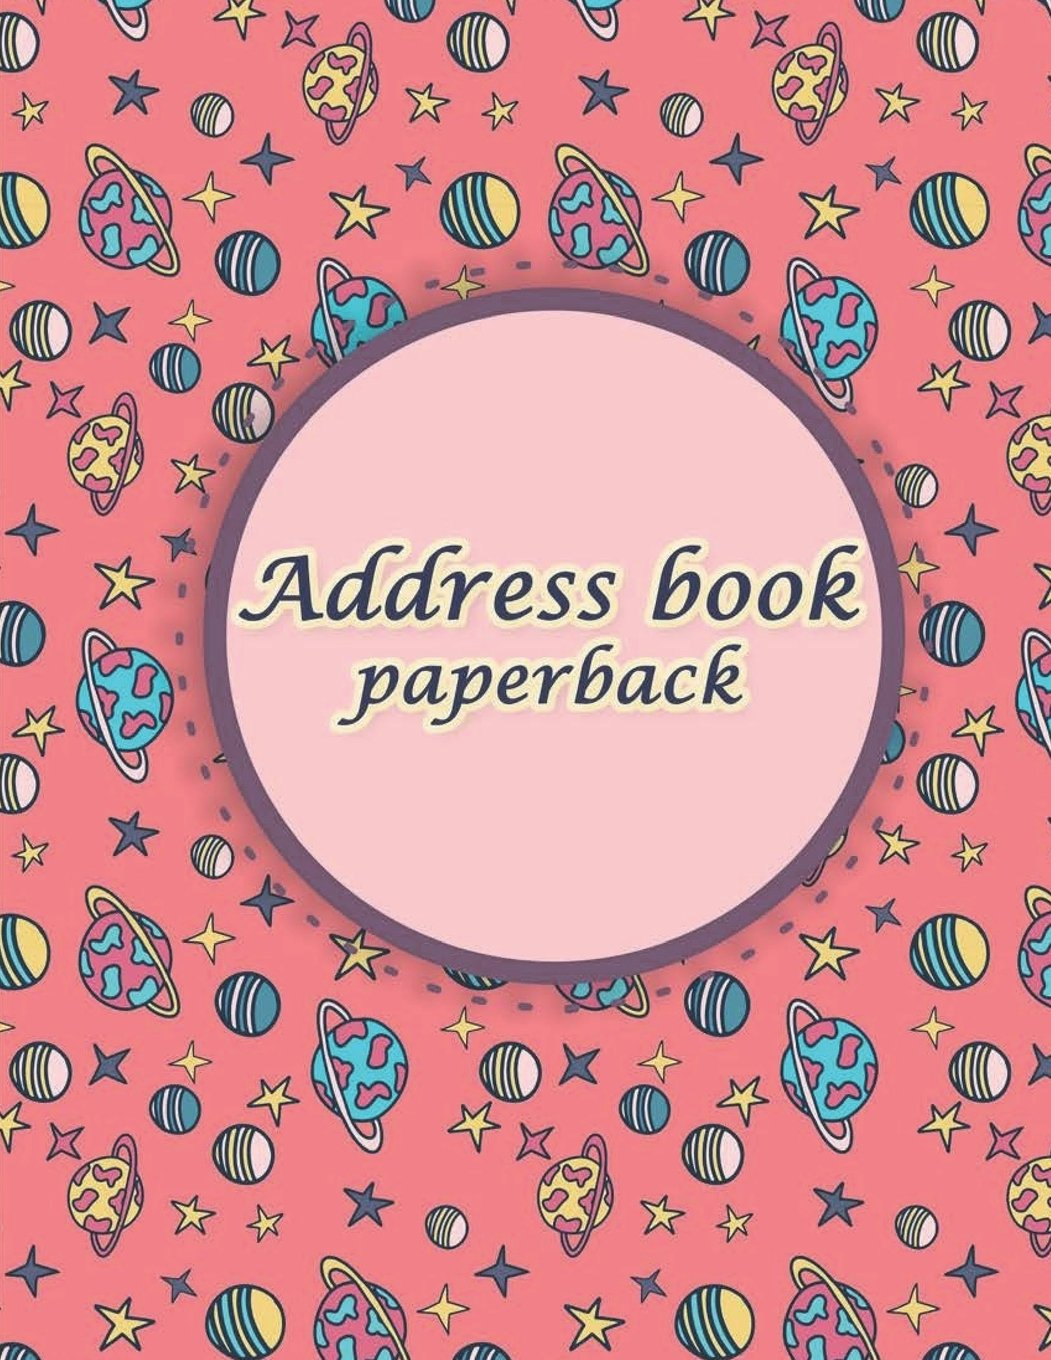 "Address book paperback: Email Address Book And Contact Book, with A-Z Tabs Address, Phone, Email, Emergency Contact, Birthday 120 Pages large print 8.5"" x 11"" pdf epub"